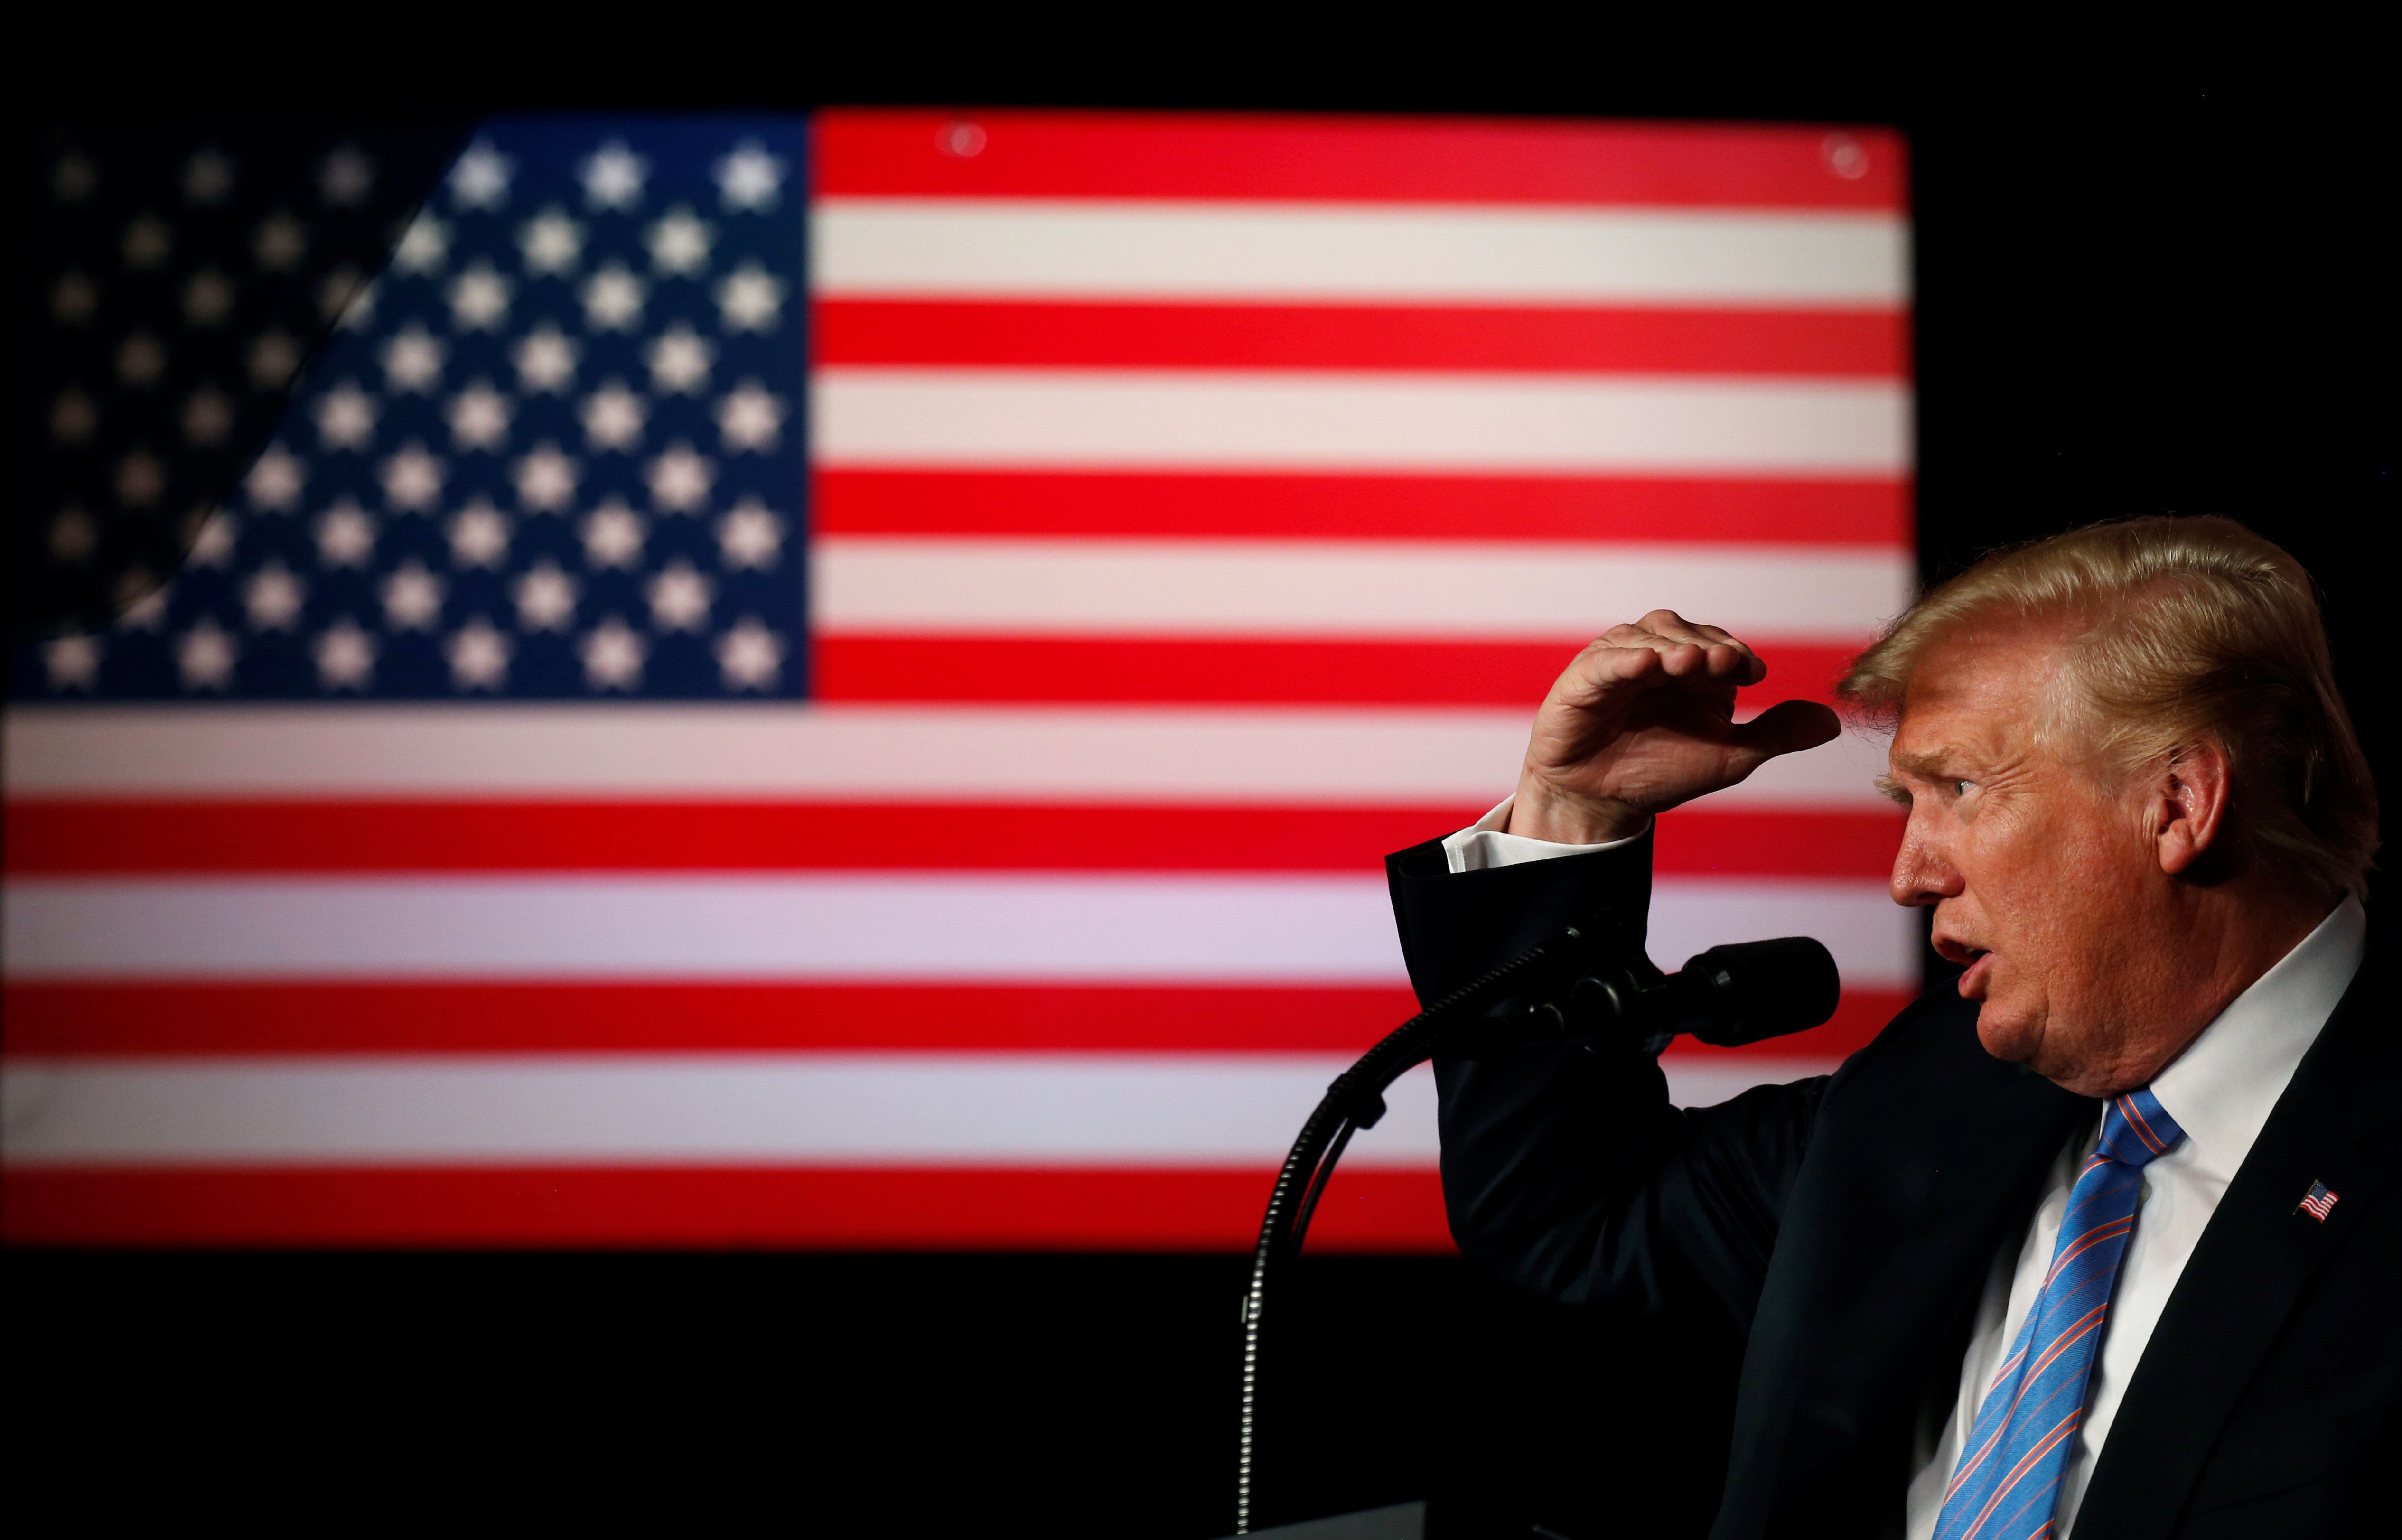 """U.S. President Donald Trump delivers remarks at a """"Salute to Service"""" dinner held in honor of the nation's military at The Greenbrier in White Sulphur Springs, West Virginia, U.S., July 3, 2018. REUTERS/Leah Millis"""